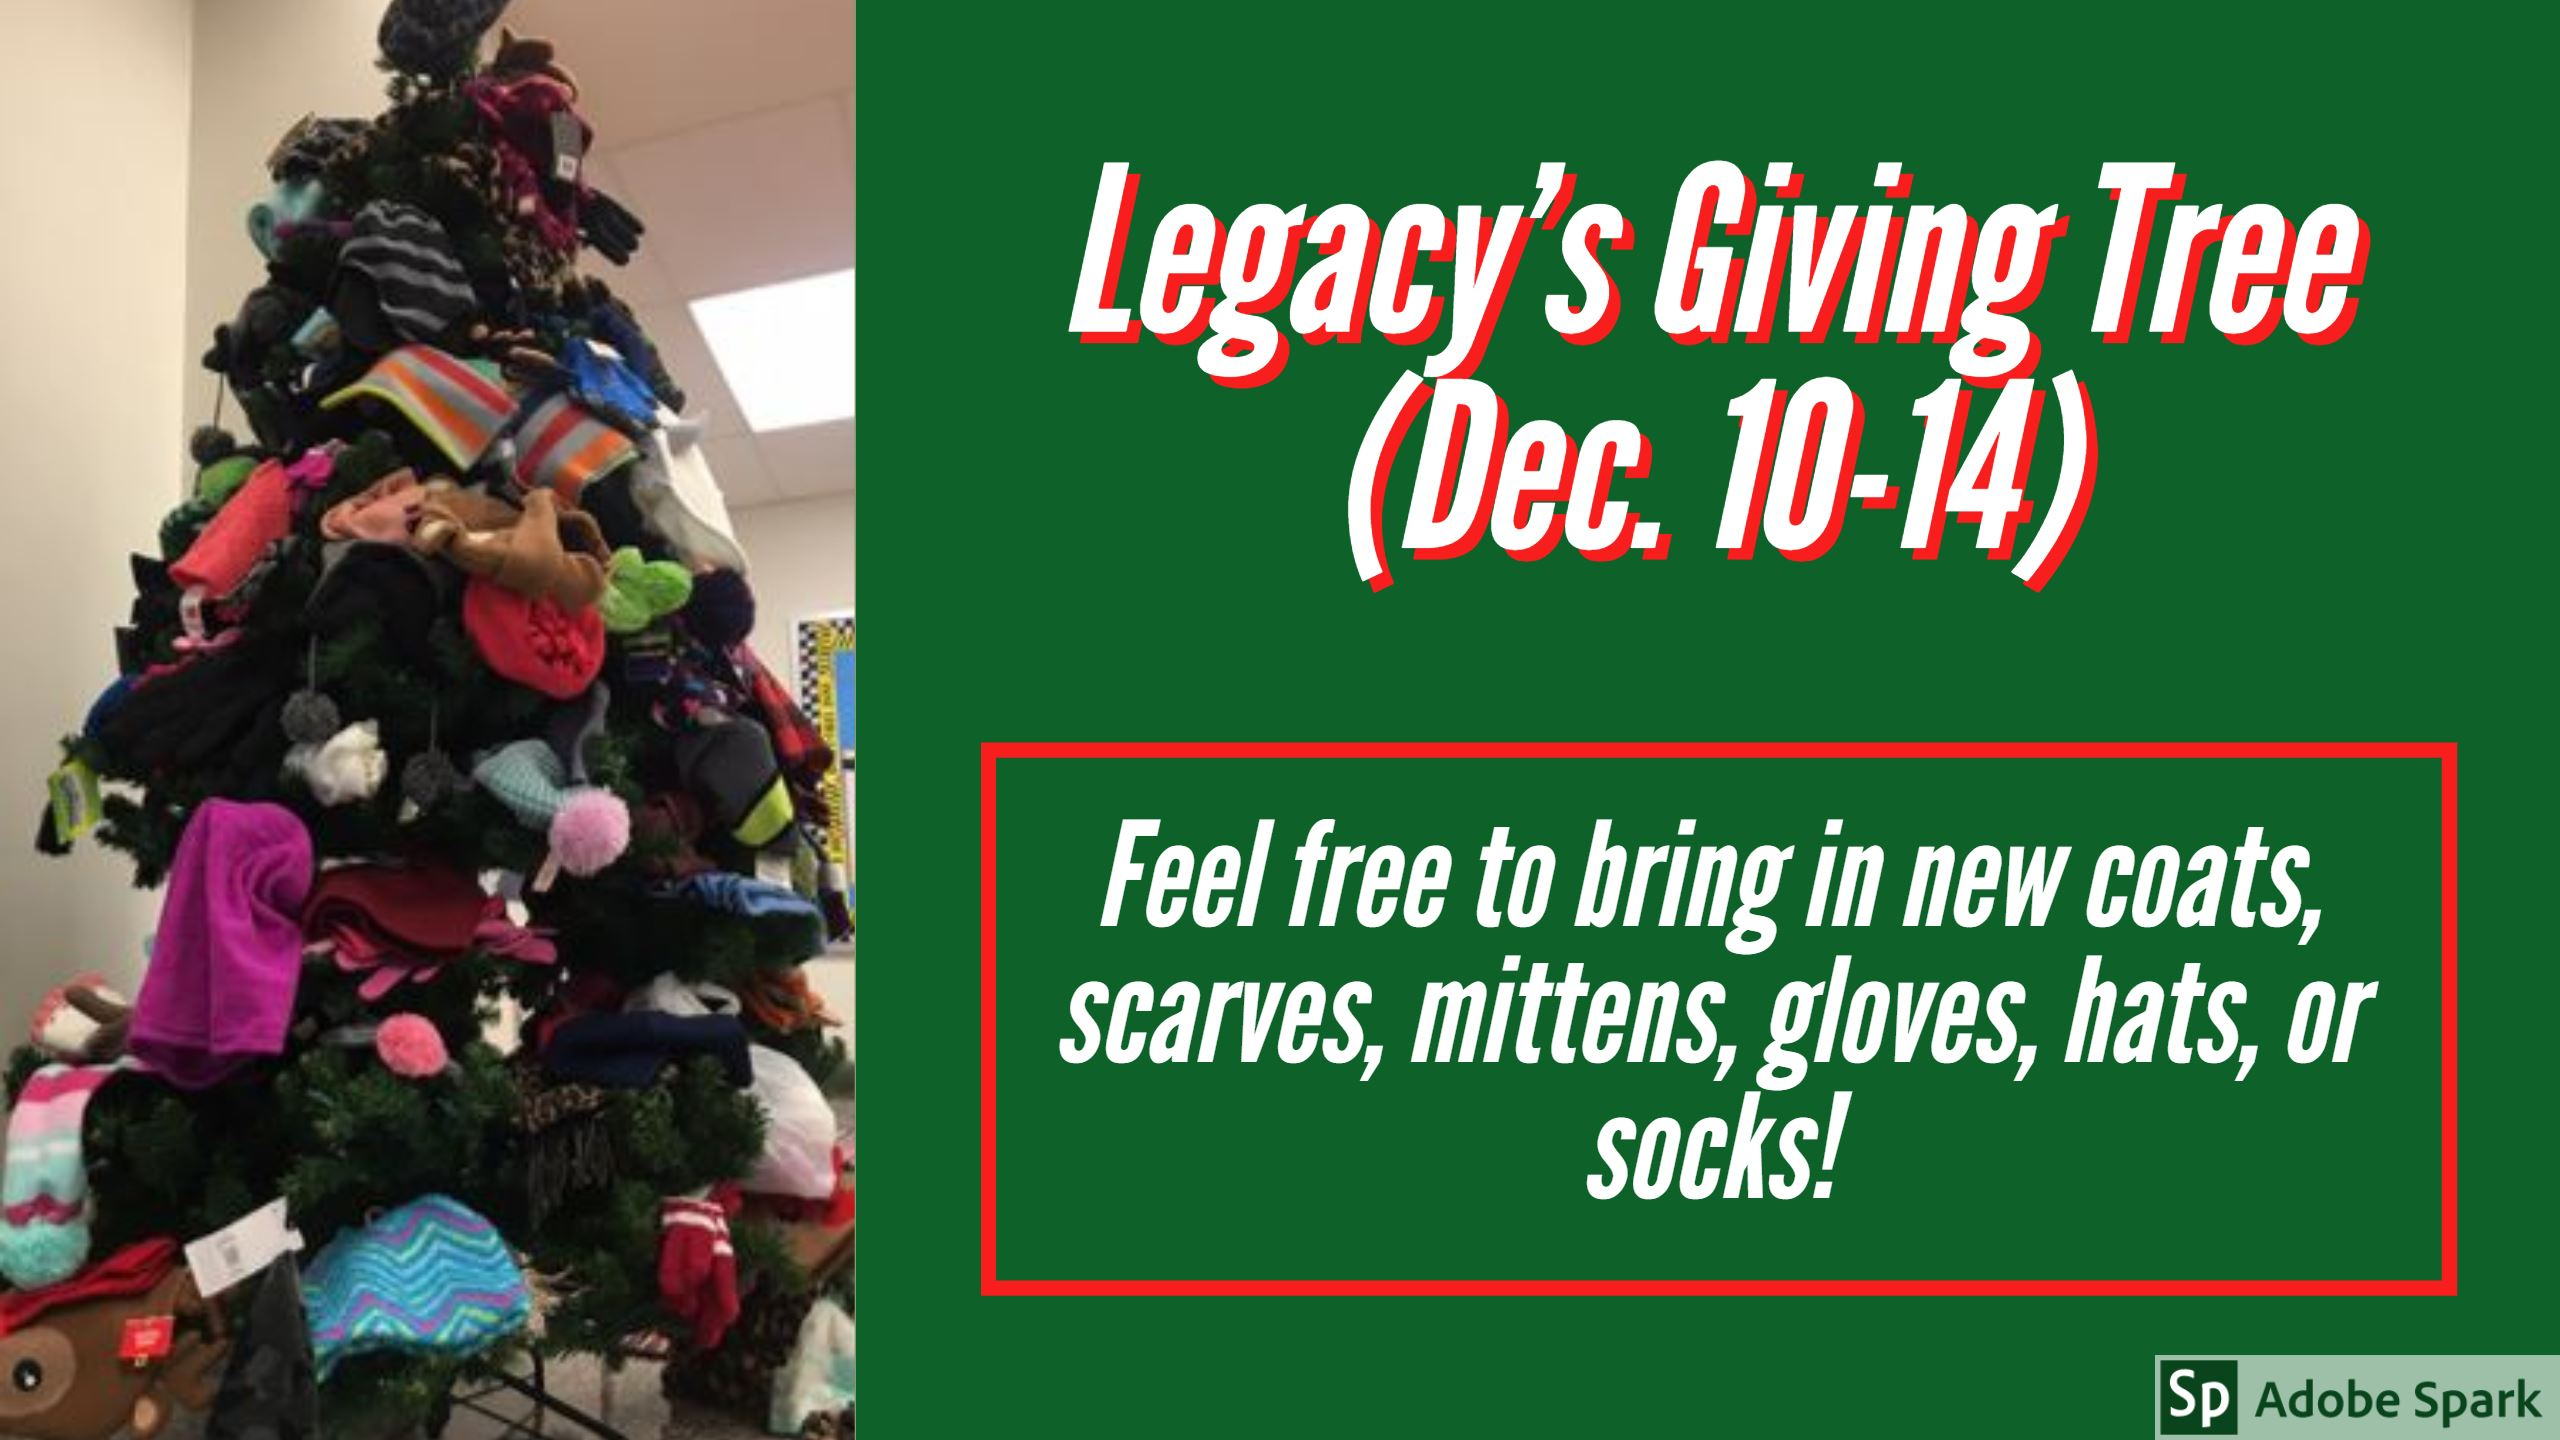 Legacy's Giving Tree